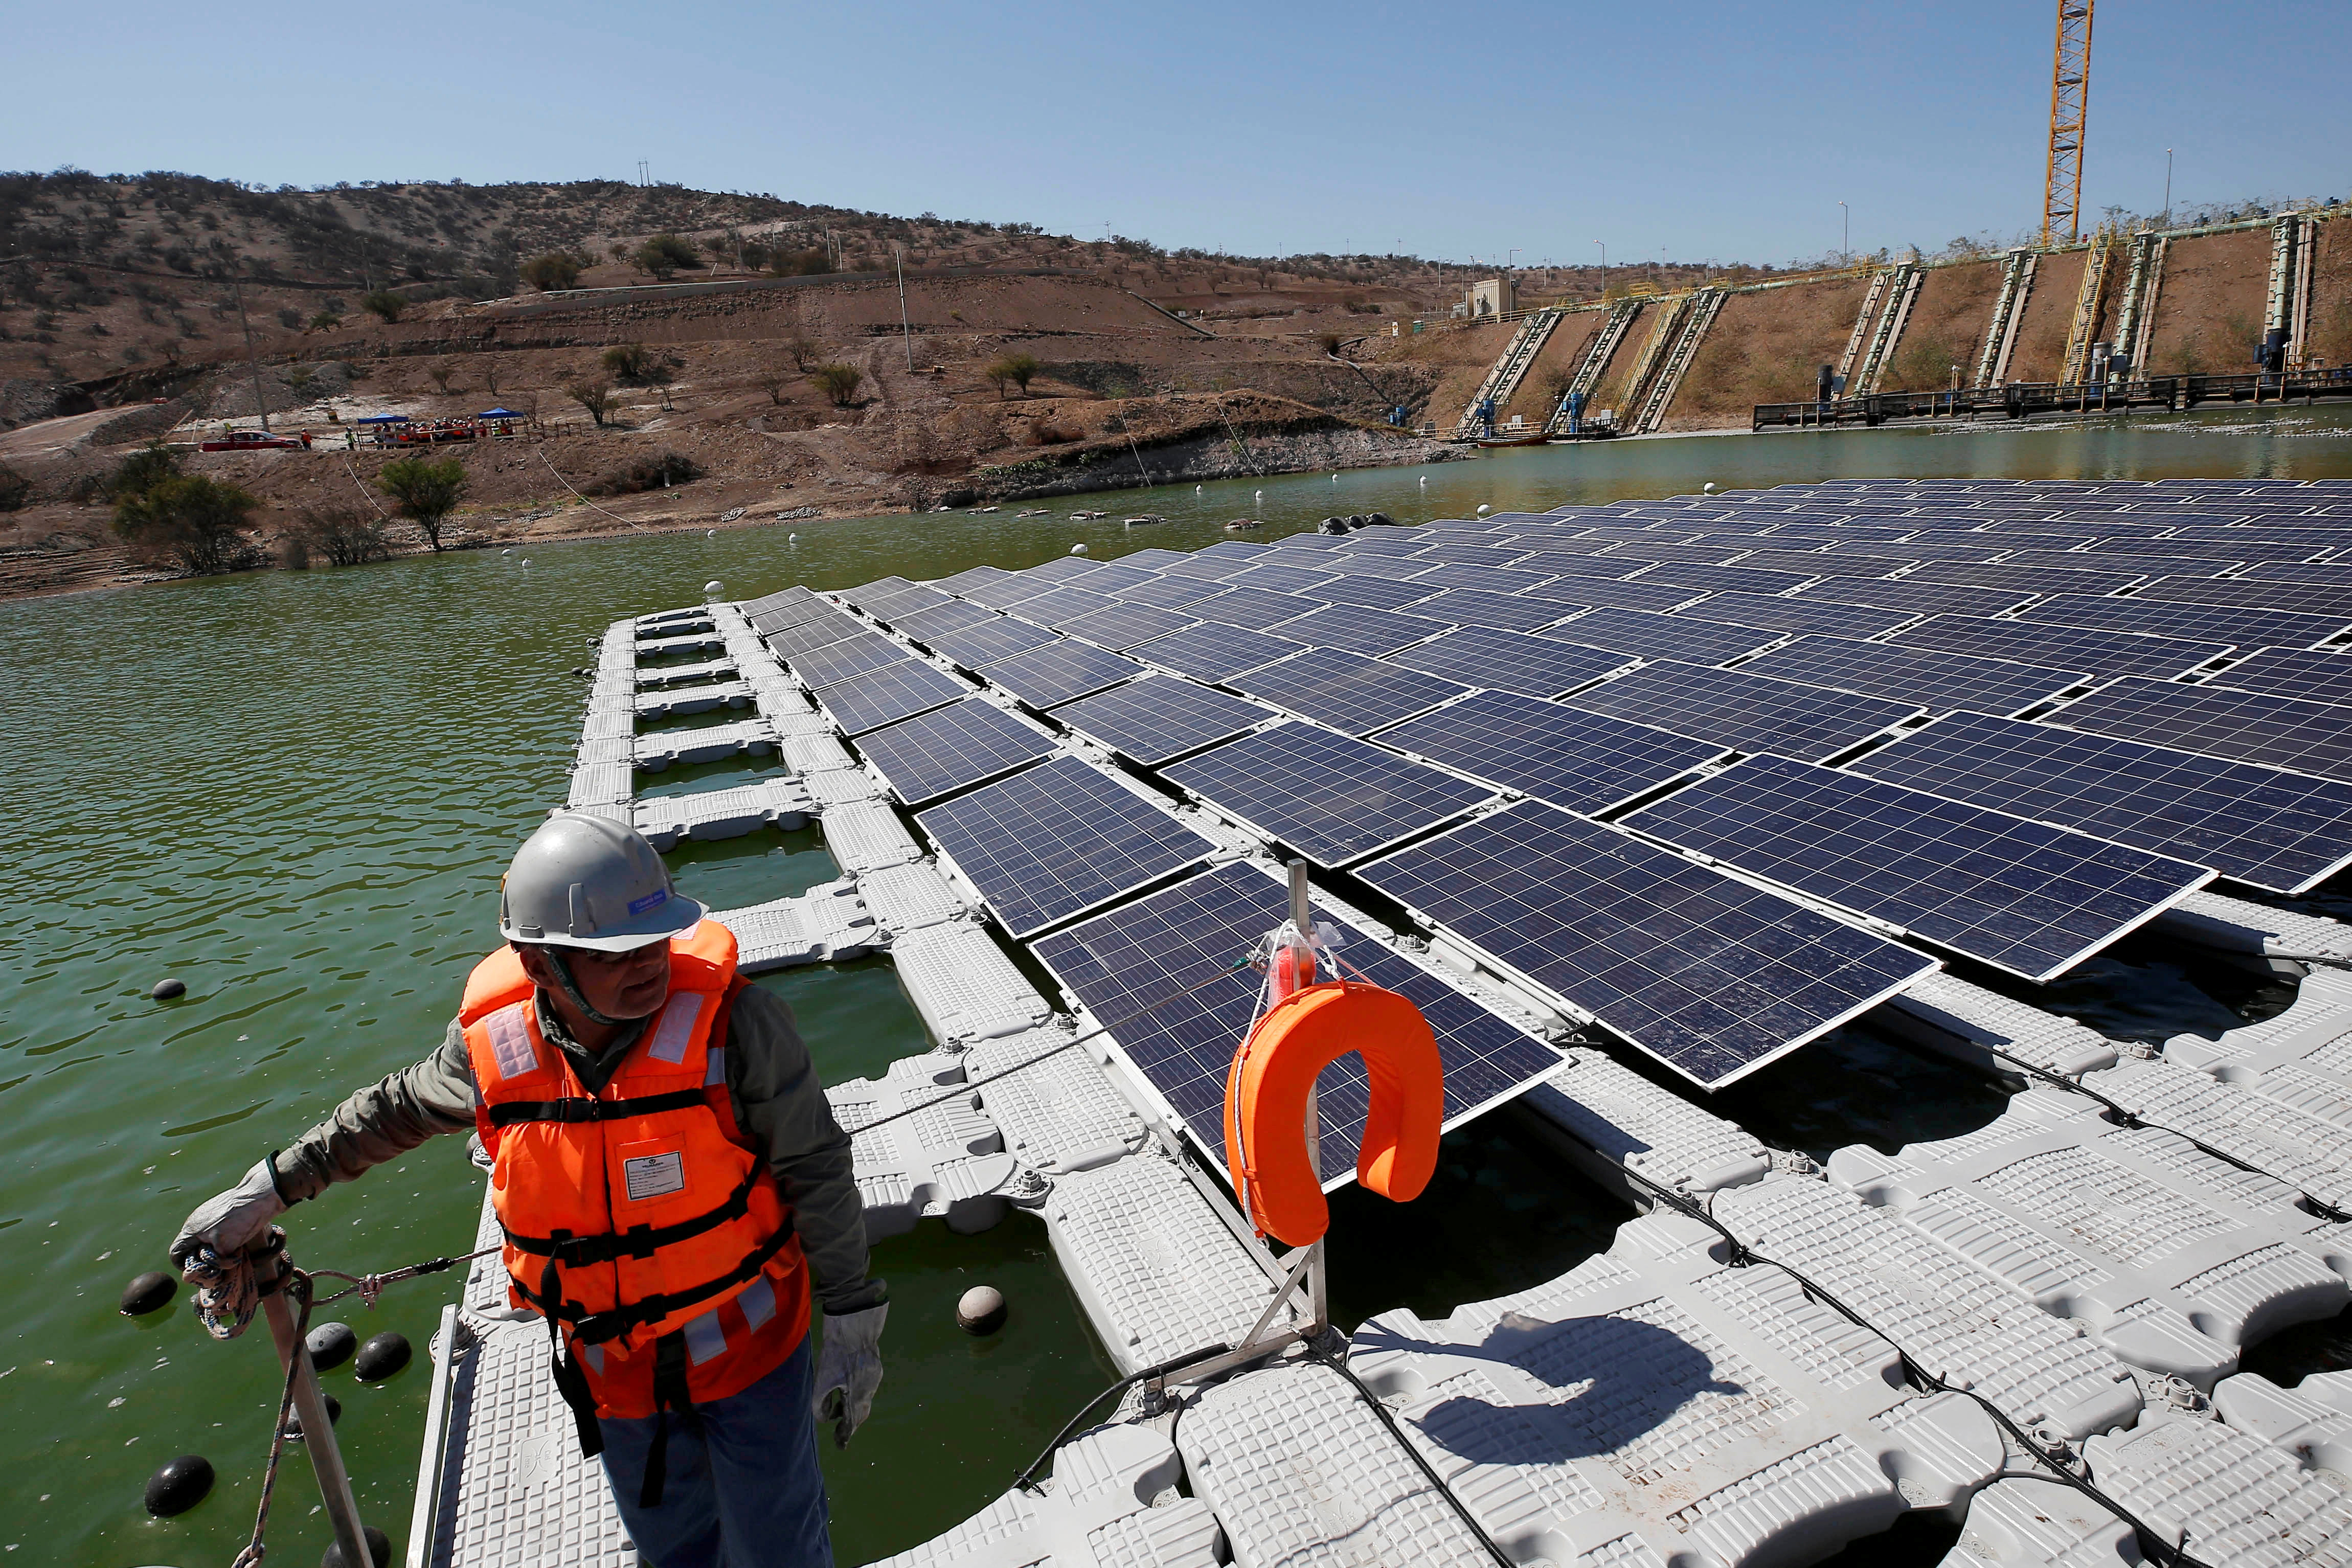 Solar panels are seen during the inauguration of world's first-ever 'island' of solar panels in a tailings pond of the Los Bronces copper mine of Anglo American, on the outskirts of Santiago, Chile March 14, 2019. REUTERS/Rodrigo Garrido